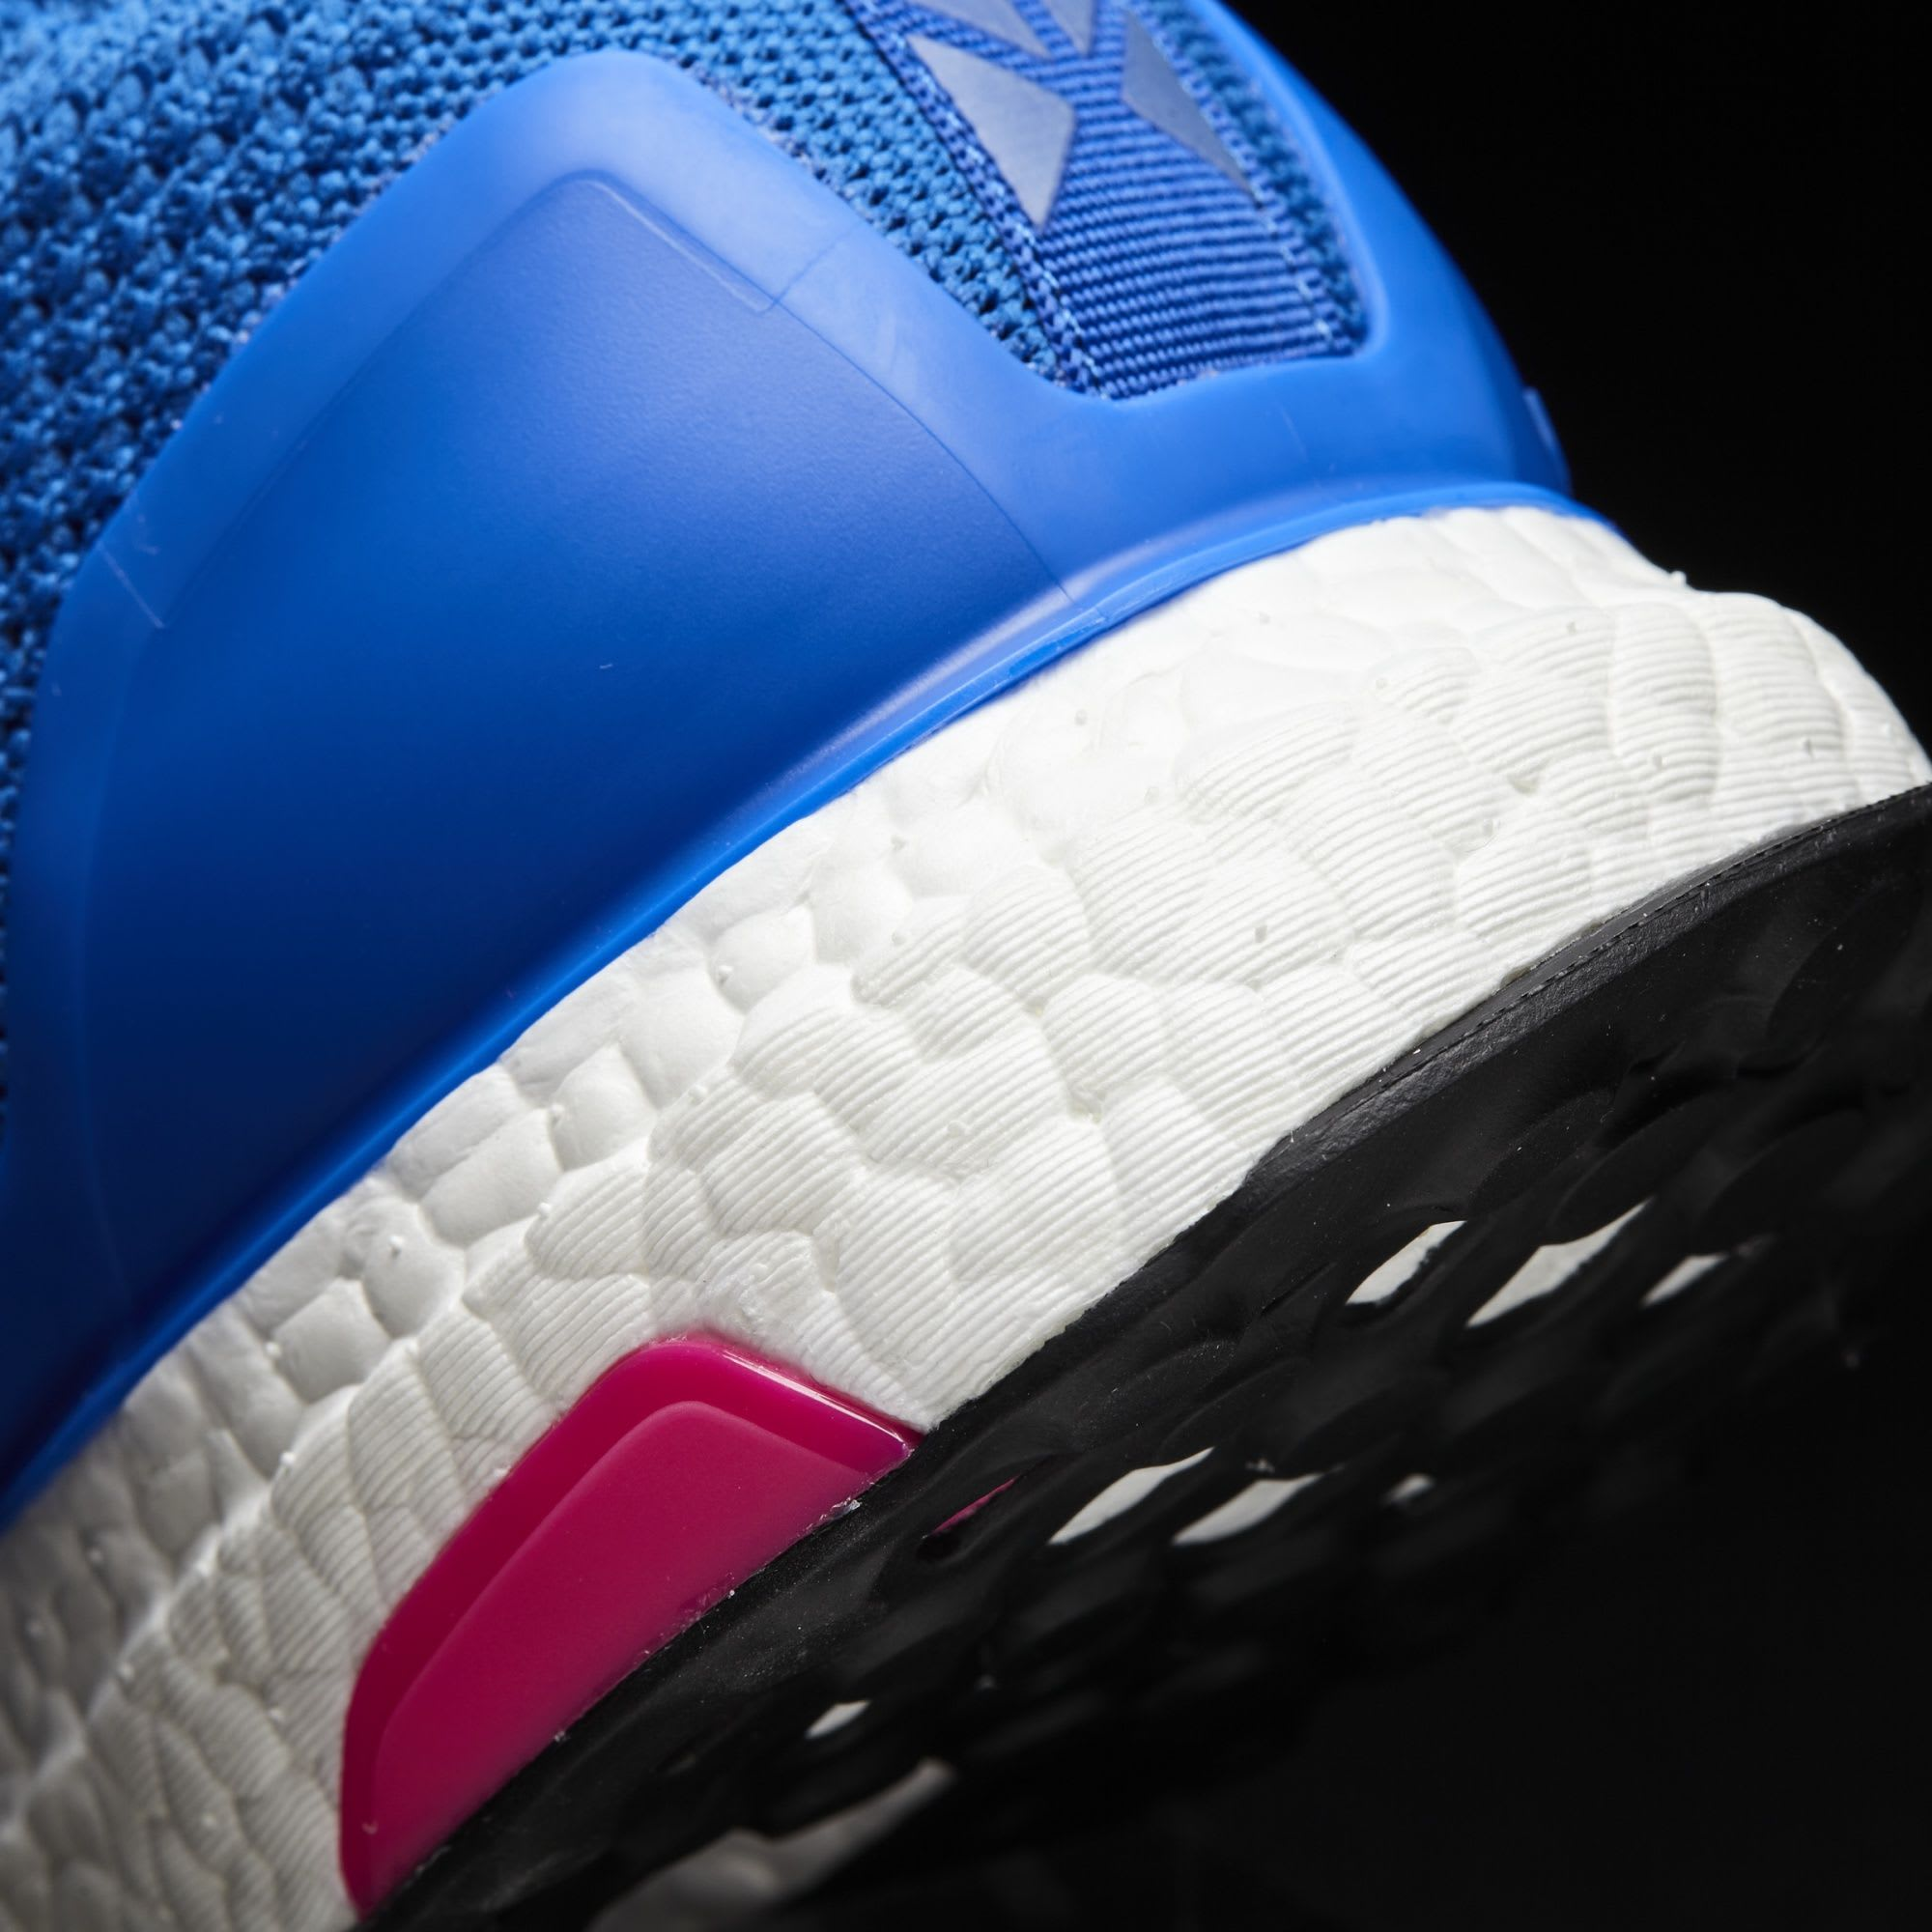 Adidas Ace 16 Pure Control Ultra Boost BY9090 Blue Pink Midsole